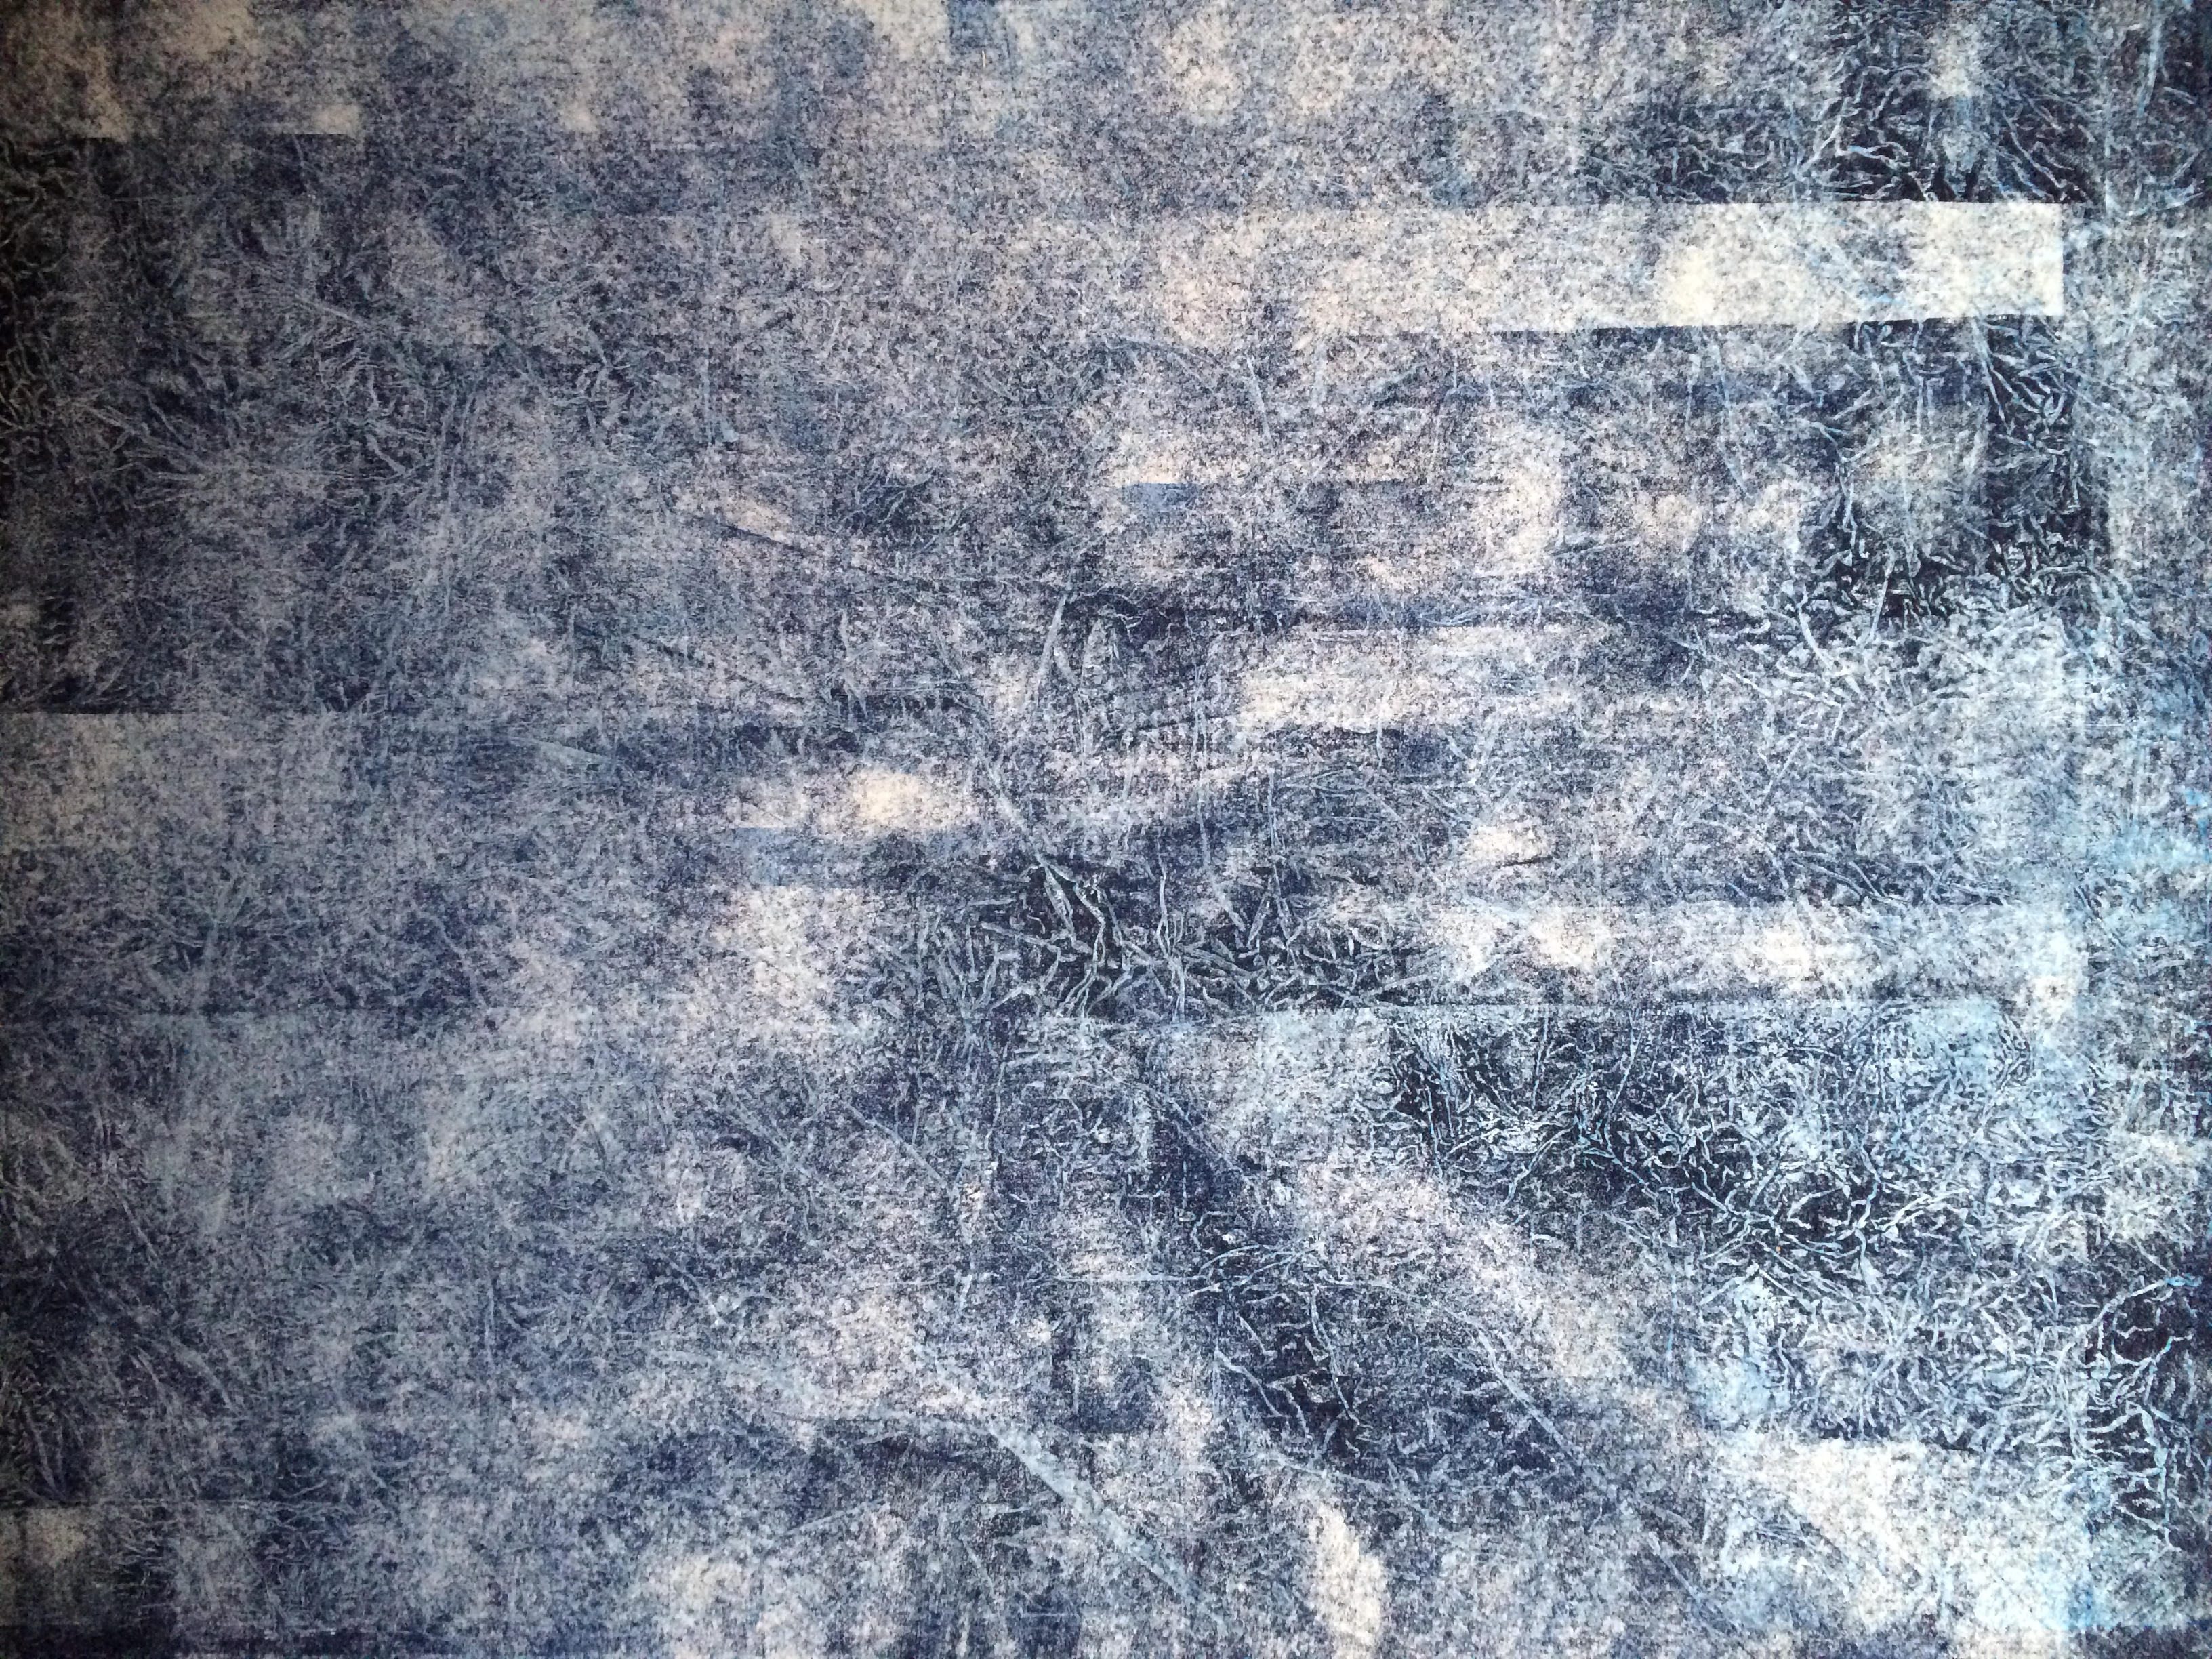 Untitled Blue 3.  2014. woodcut, rubber and metal relief on Japanese paper. 39 in x 26 in